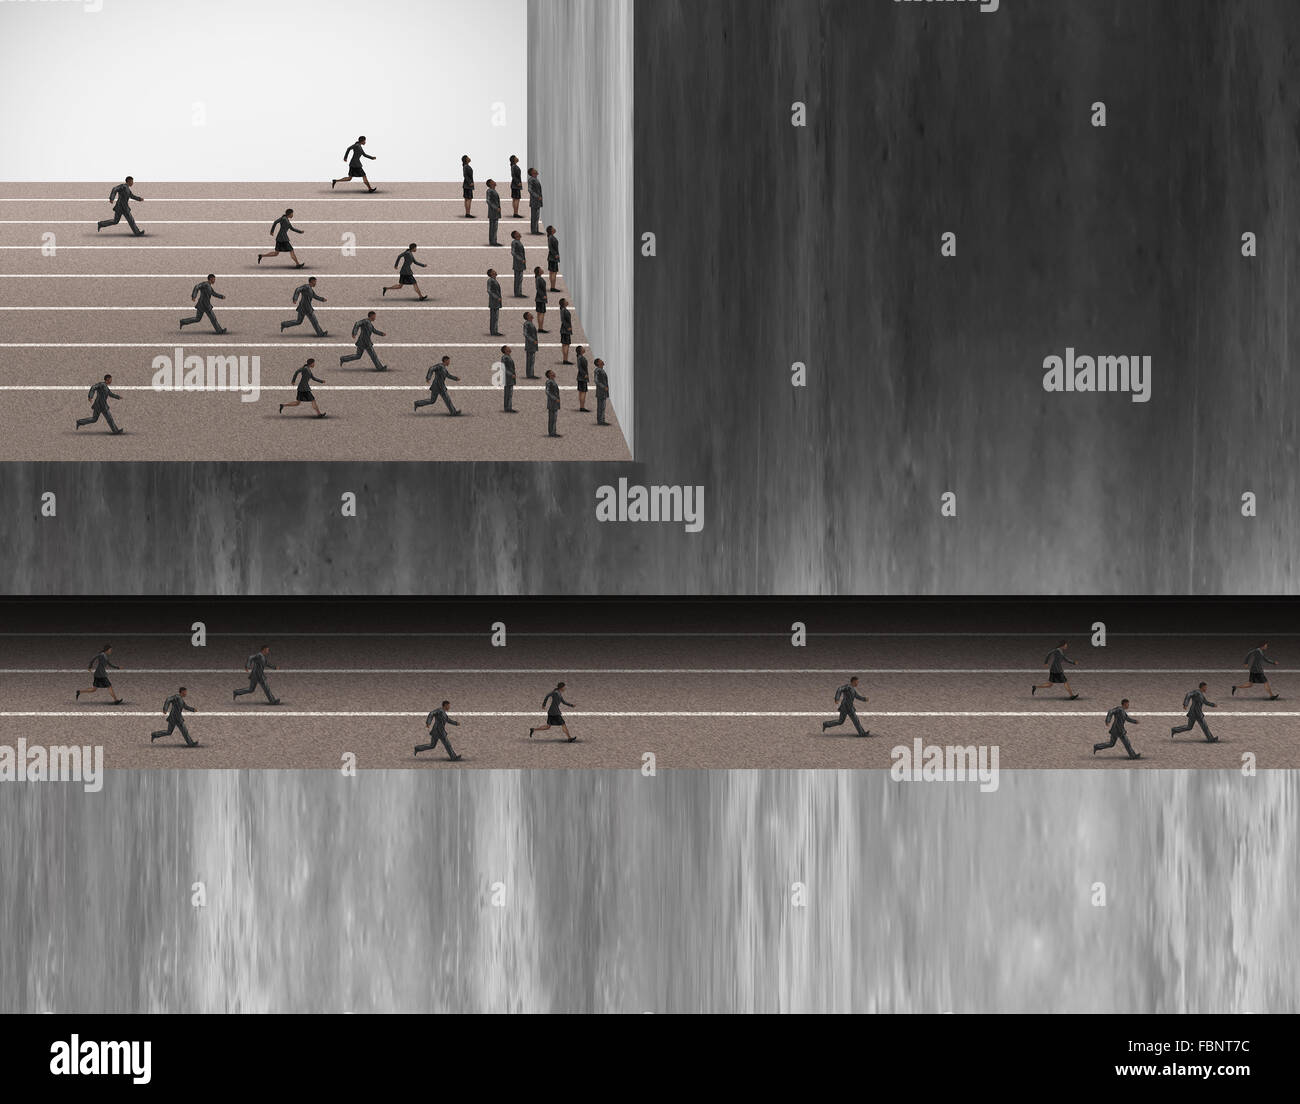 Hidden career opportunities business jobs concept as a group of people stopped at a wall and another group in an - Stock Image